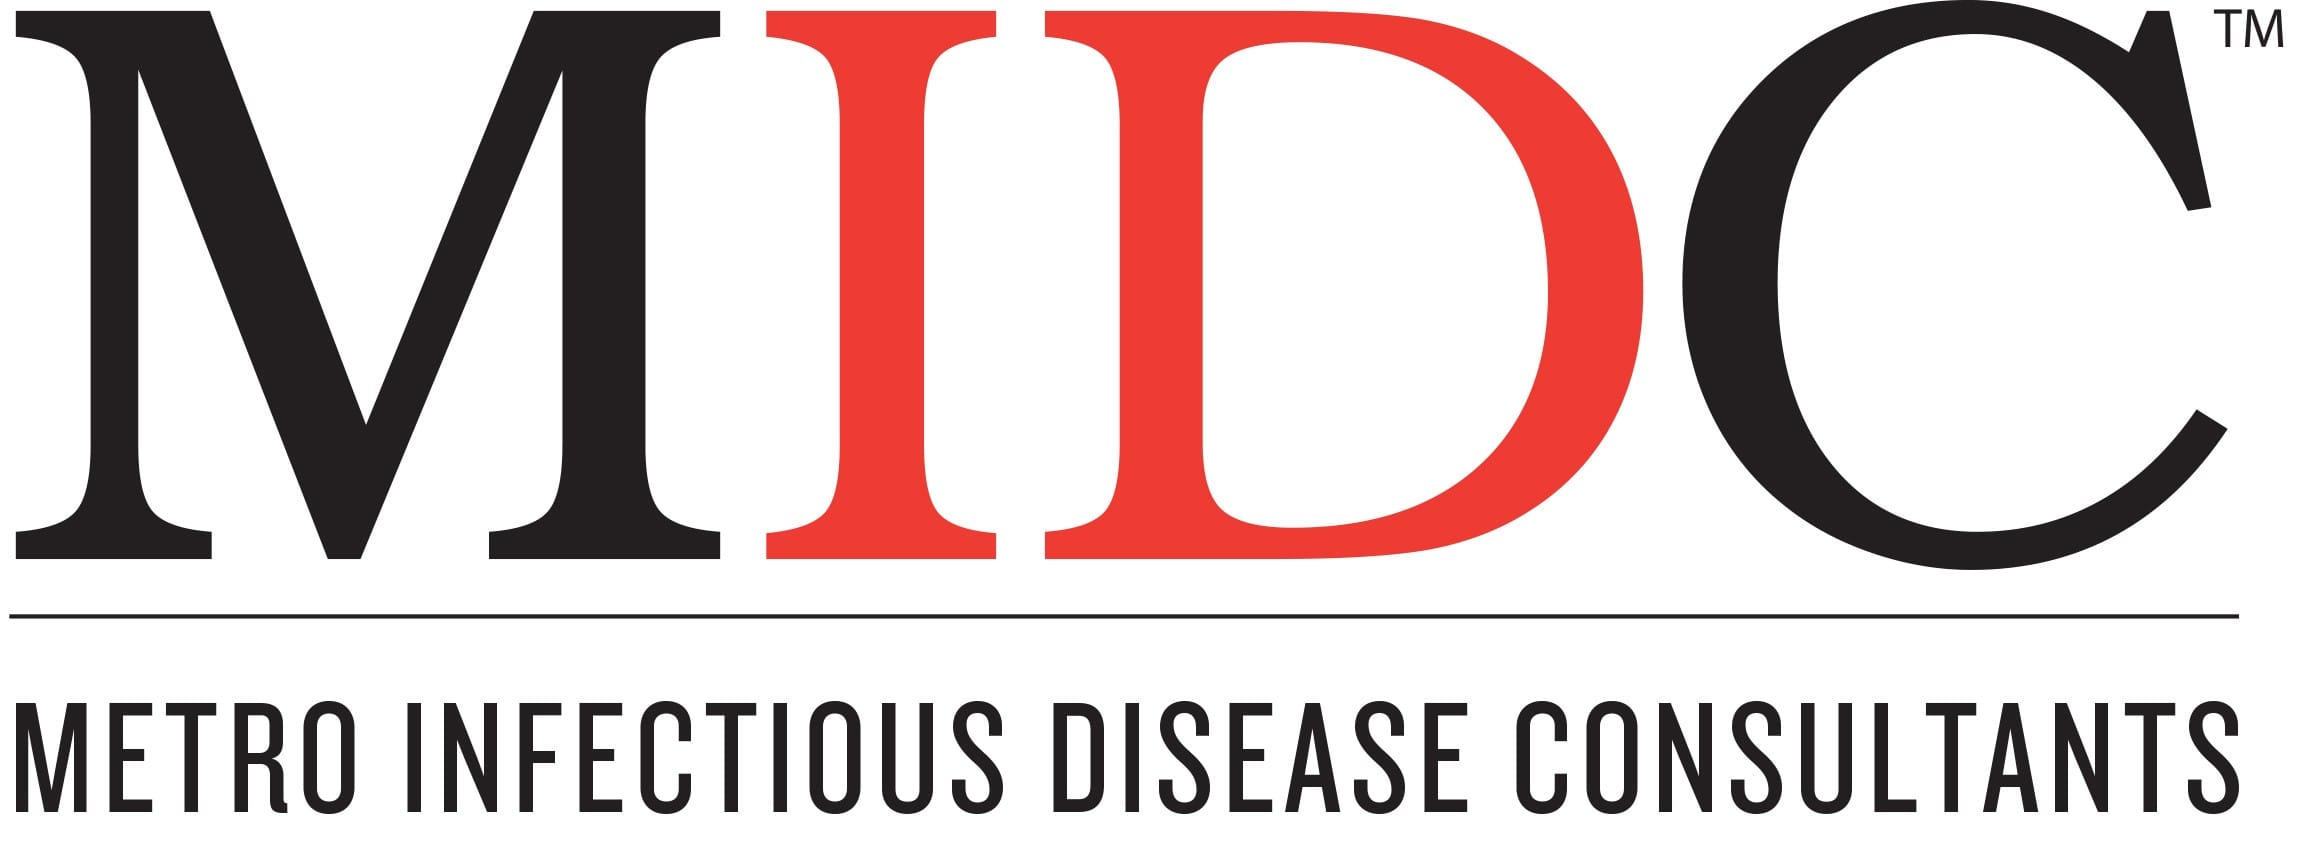 Metro Infectuous Disease Consultants logo